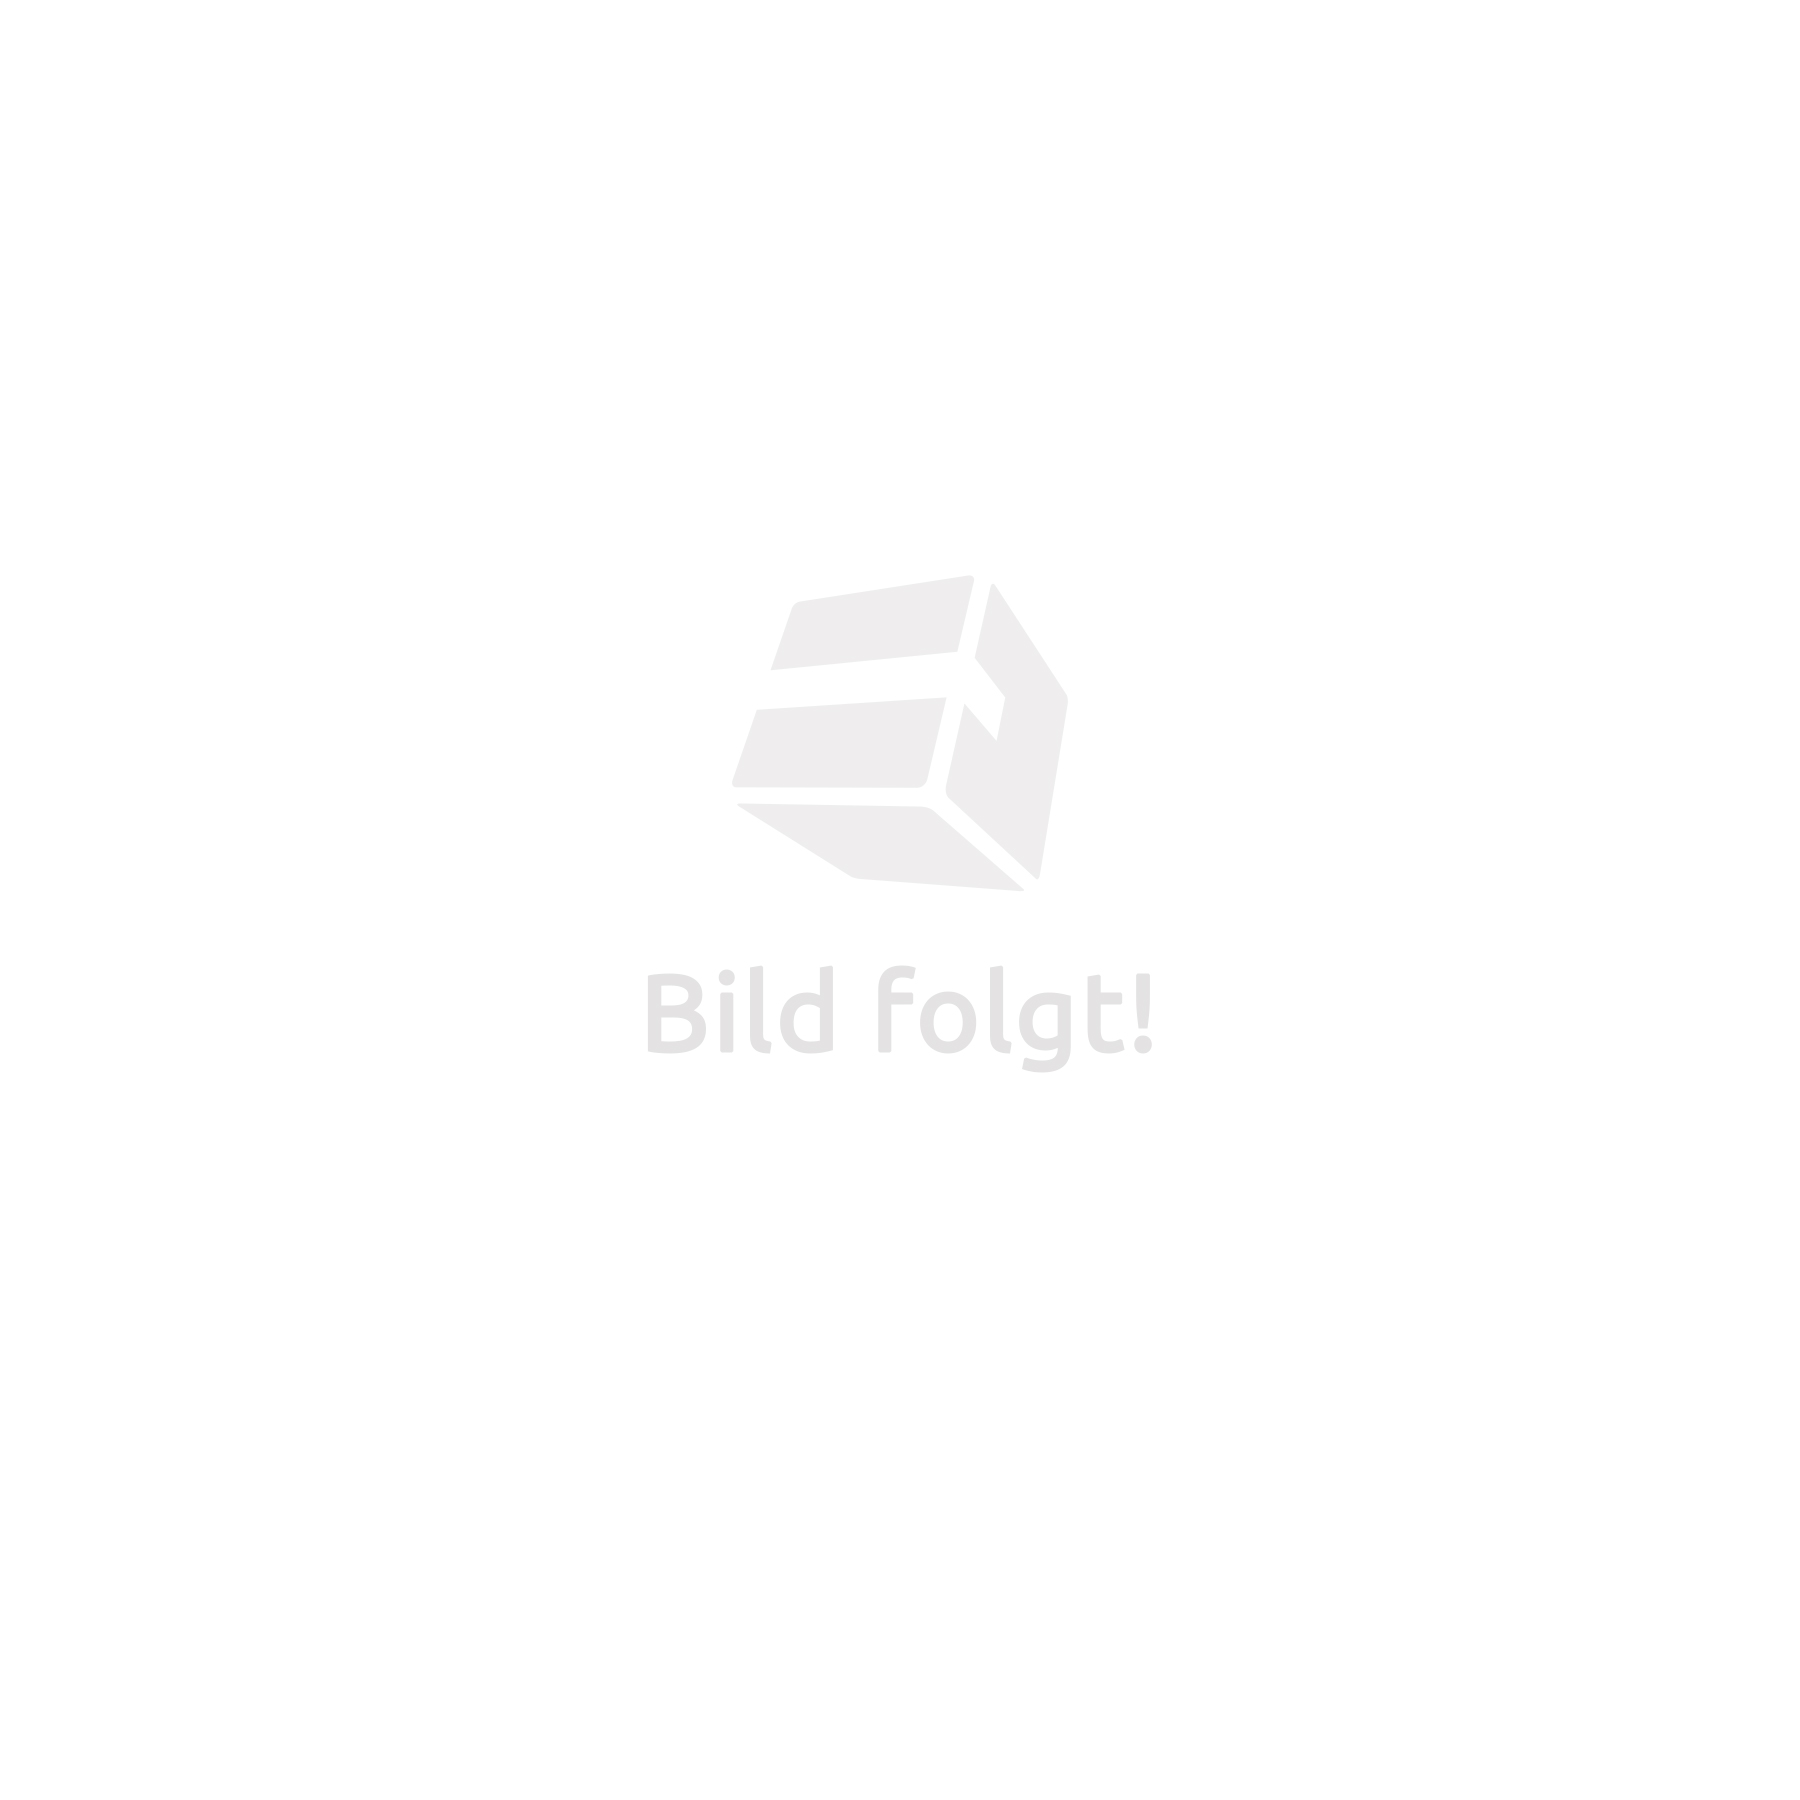 "Support TV Mural Orientable, Inclinable pour écran 32"" à 55"""